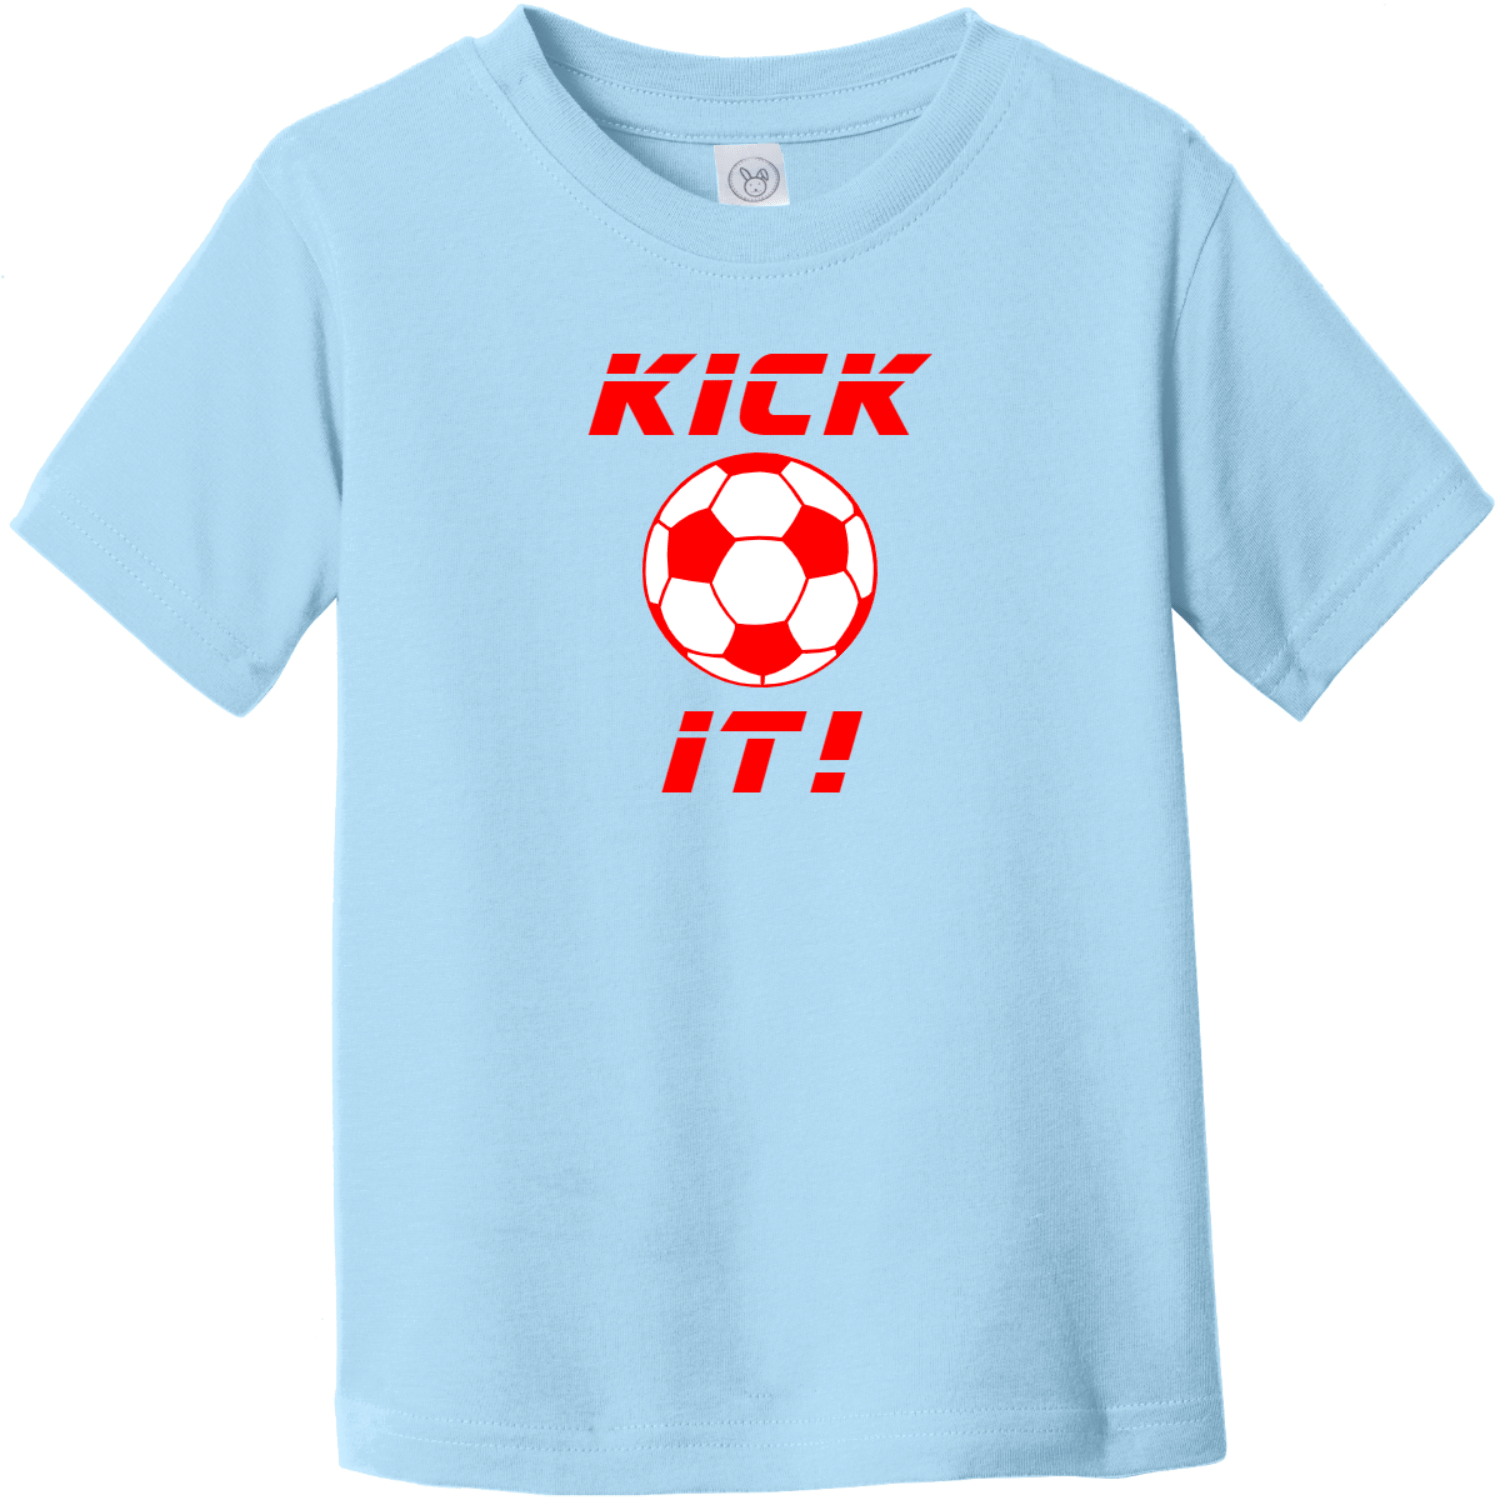 Kick It Soccer Toddler T-Shirt Light Blue Rabbit Skins Toddler Fine Jersey Tee RS3321